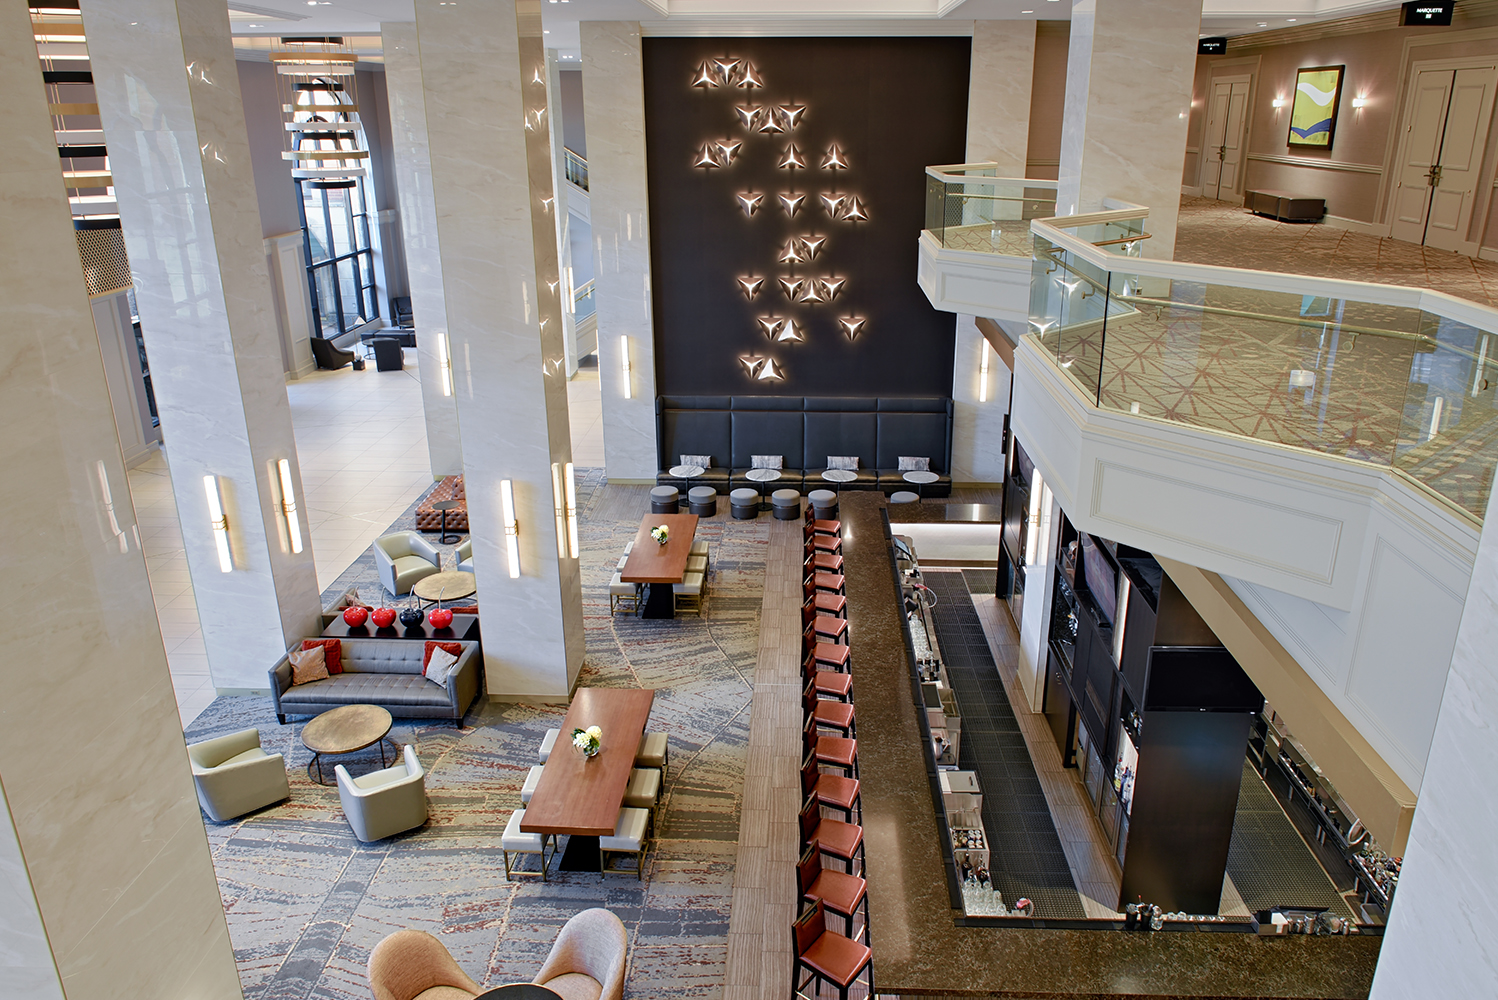 The design team preserved the original high ceilings and large arching windows of the lobby, though they also applied a mix of finishes throughout the space.